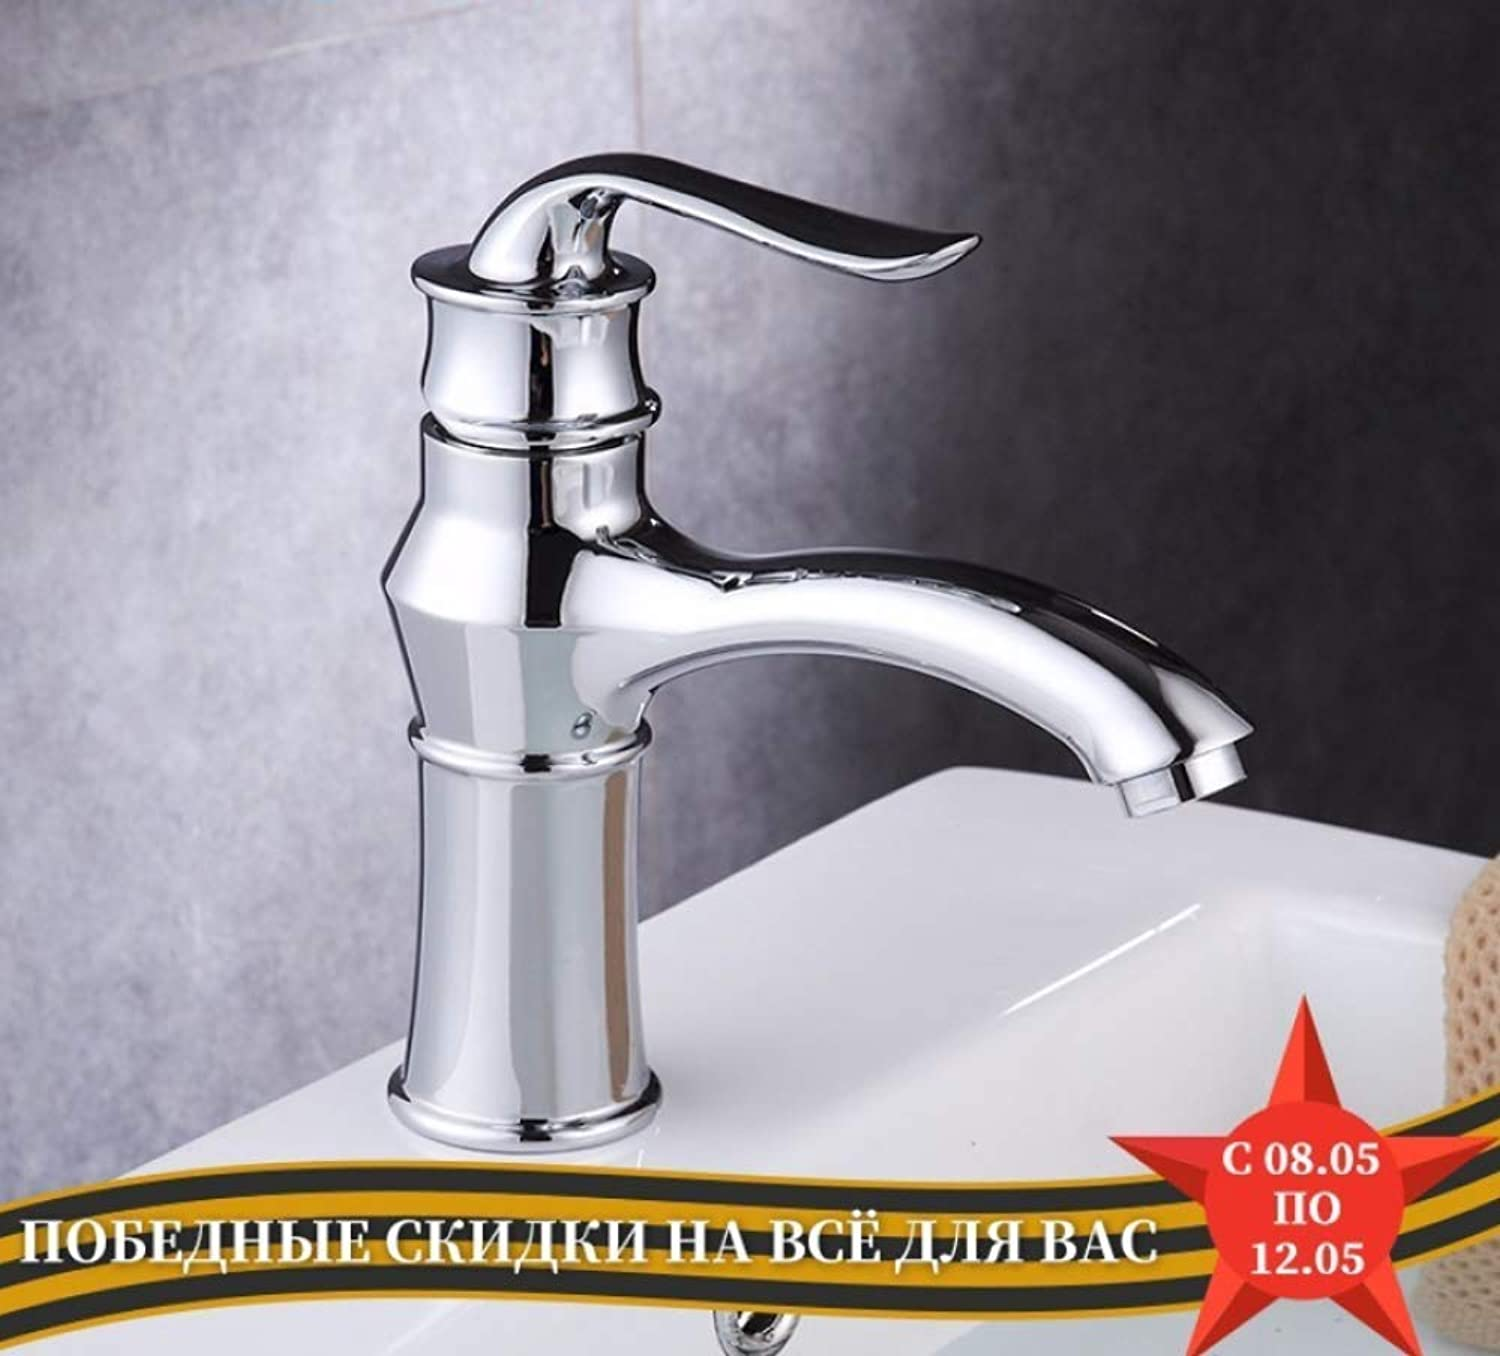 SLTYSCF Faucet Bathroom Faucet Single Handle Basin Faucets Classic Style Mixer Tap Cold and Hot Water Mixer Torneiras